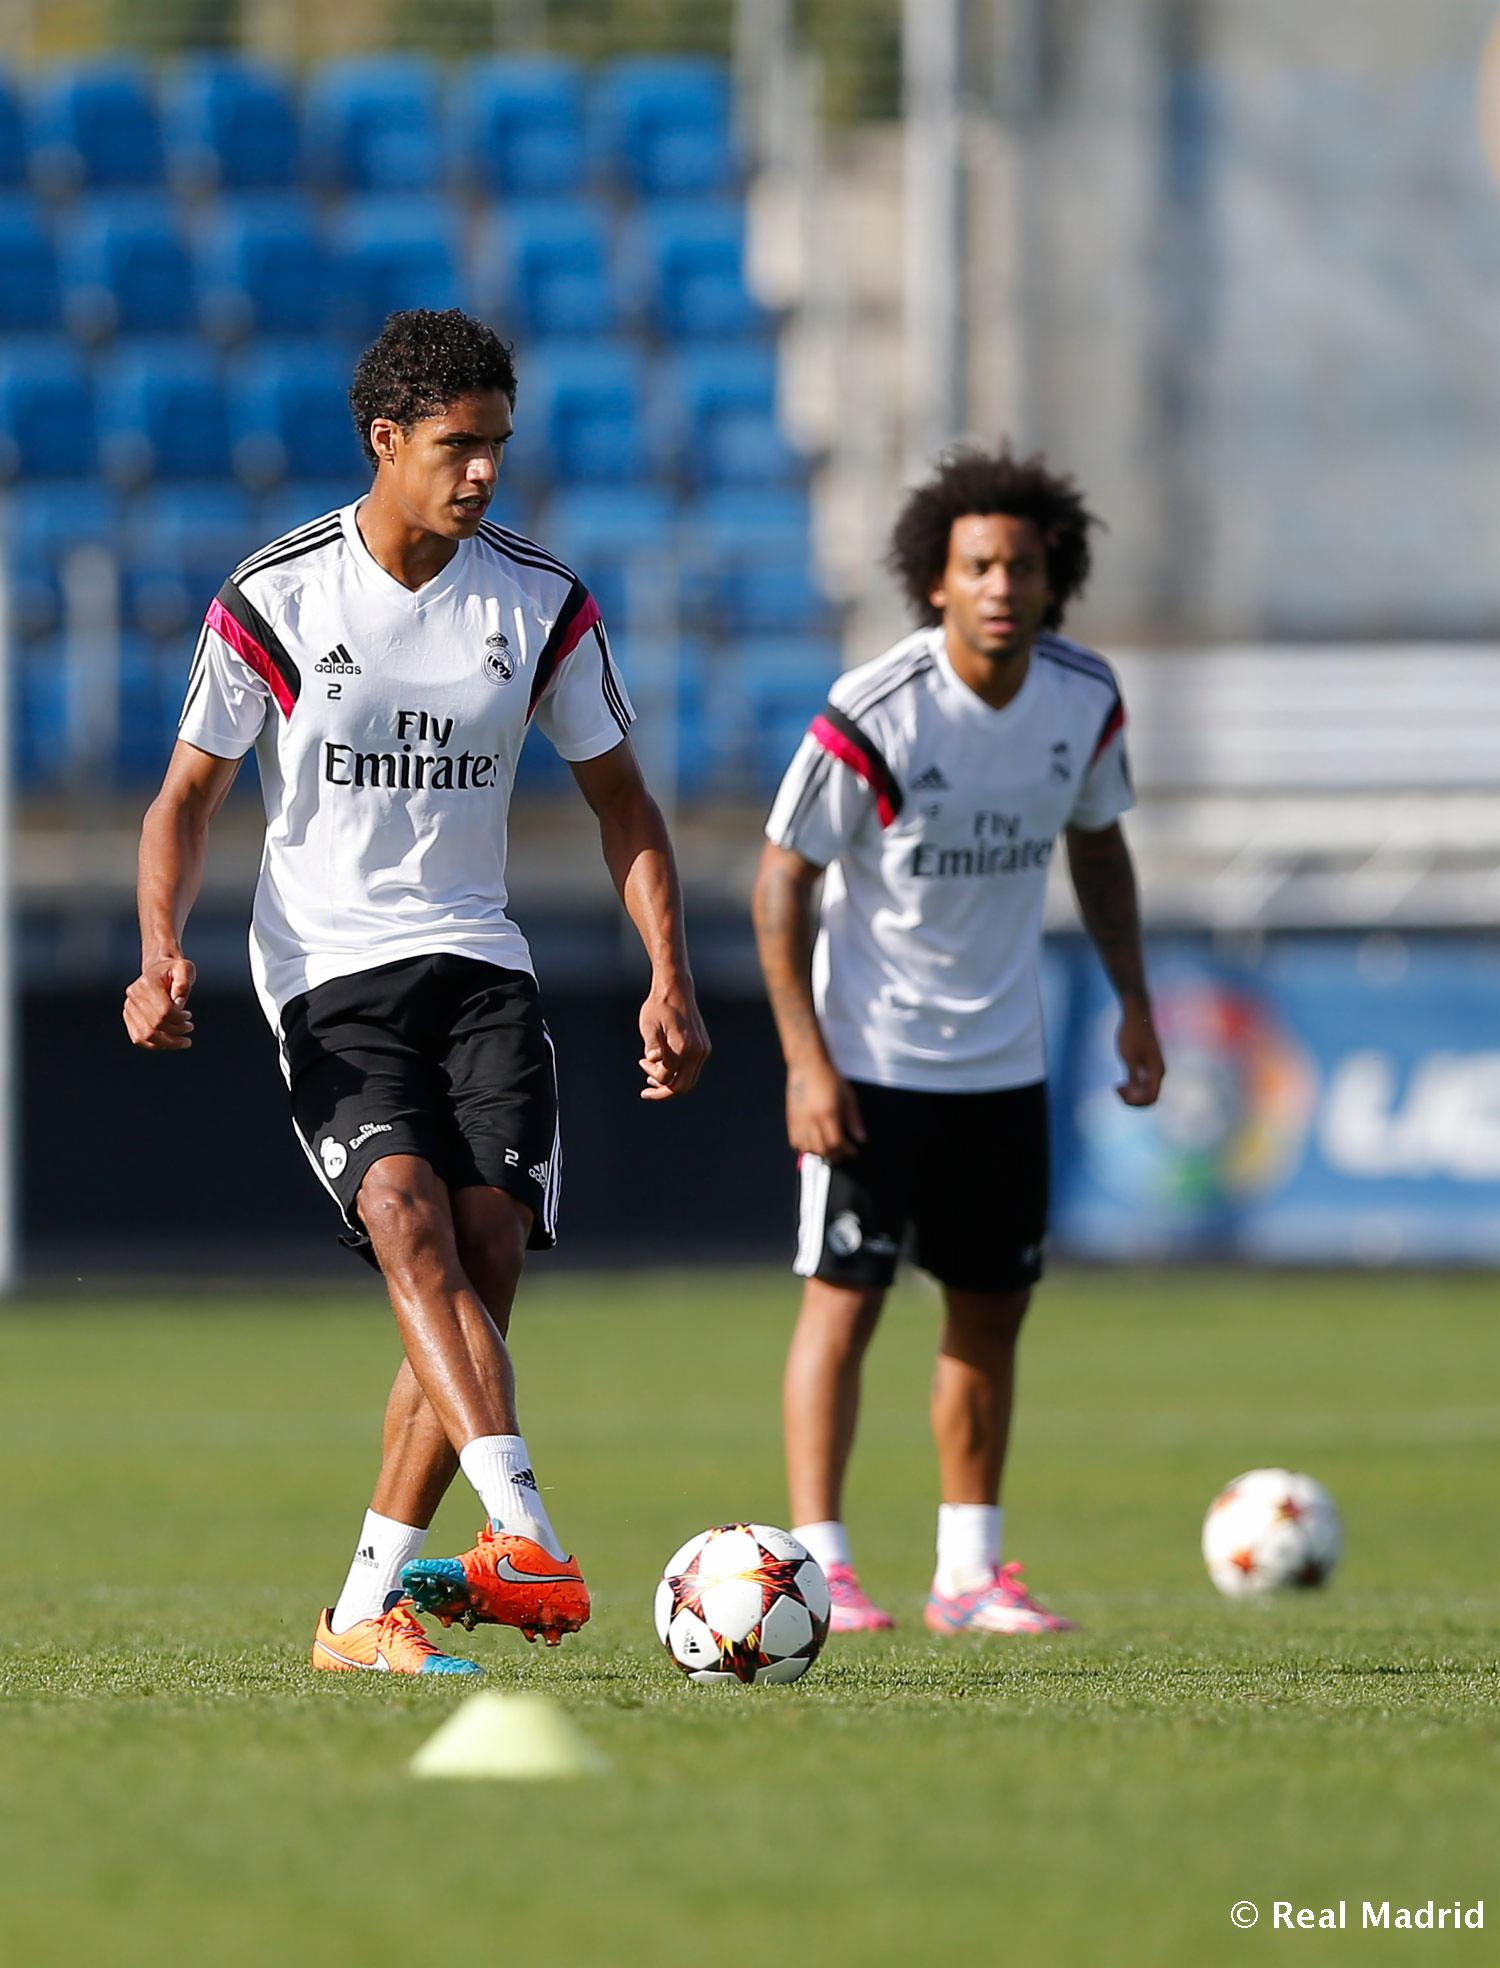 Real Madrid - Entrenamiento del Real Madrid - 20-10-2014